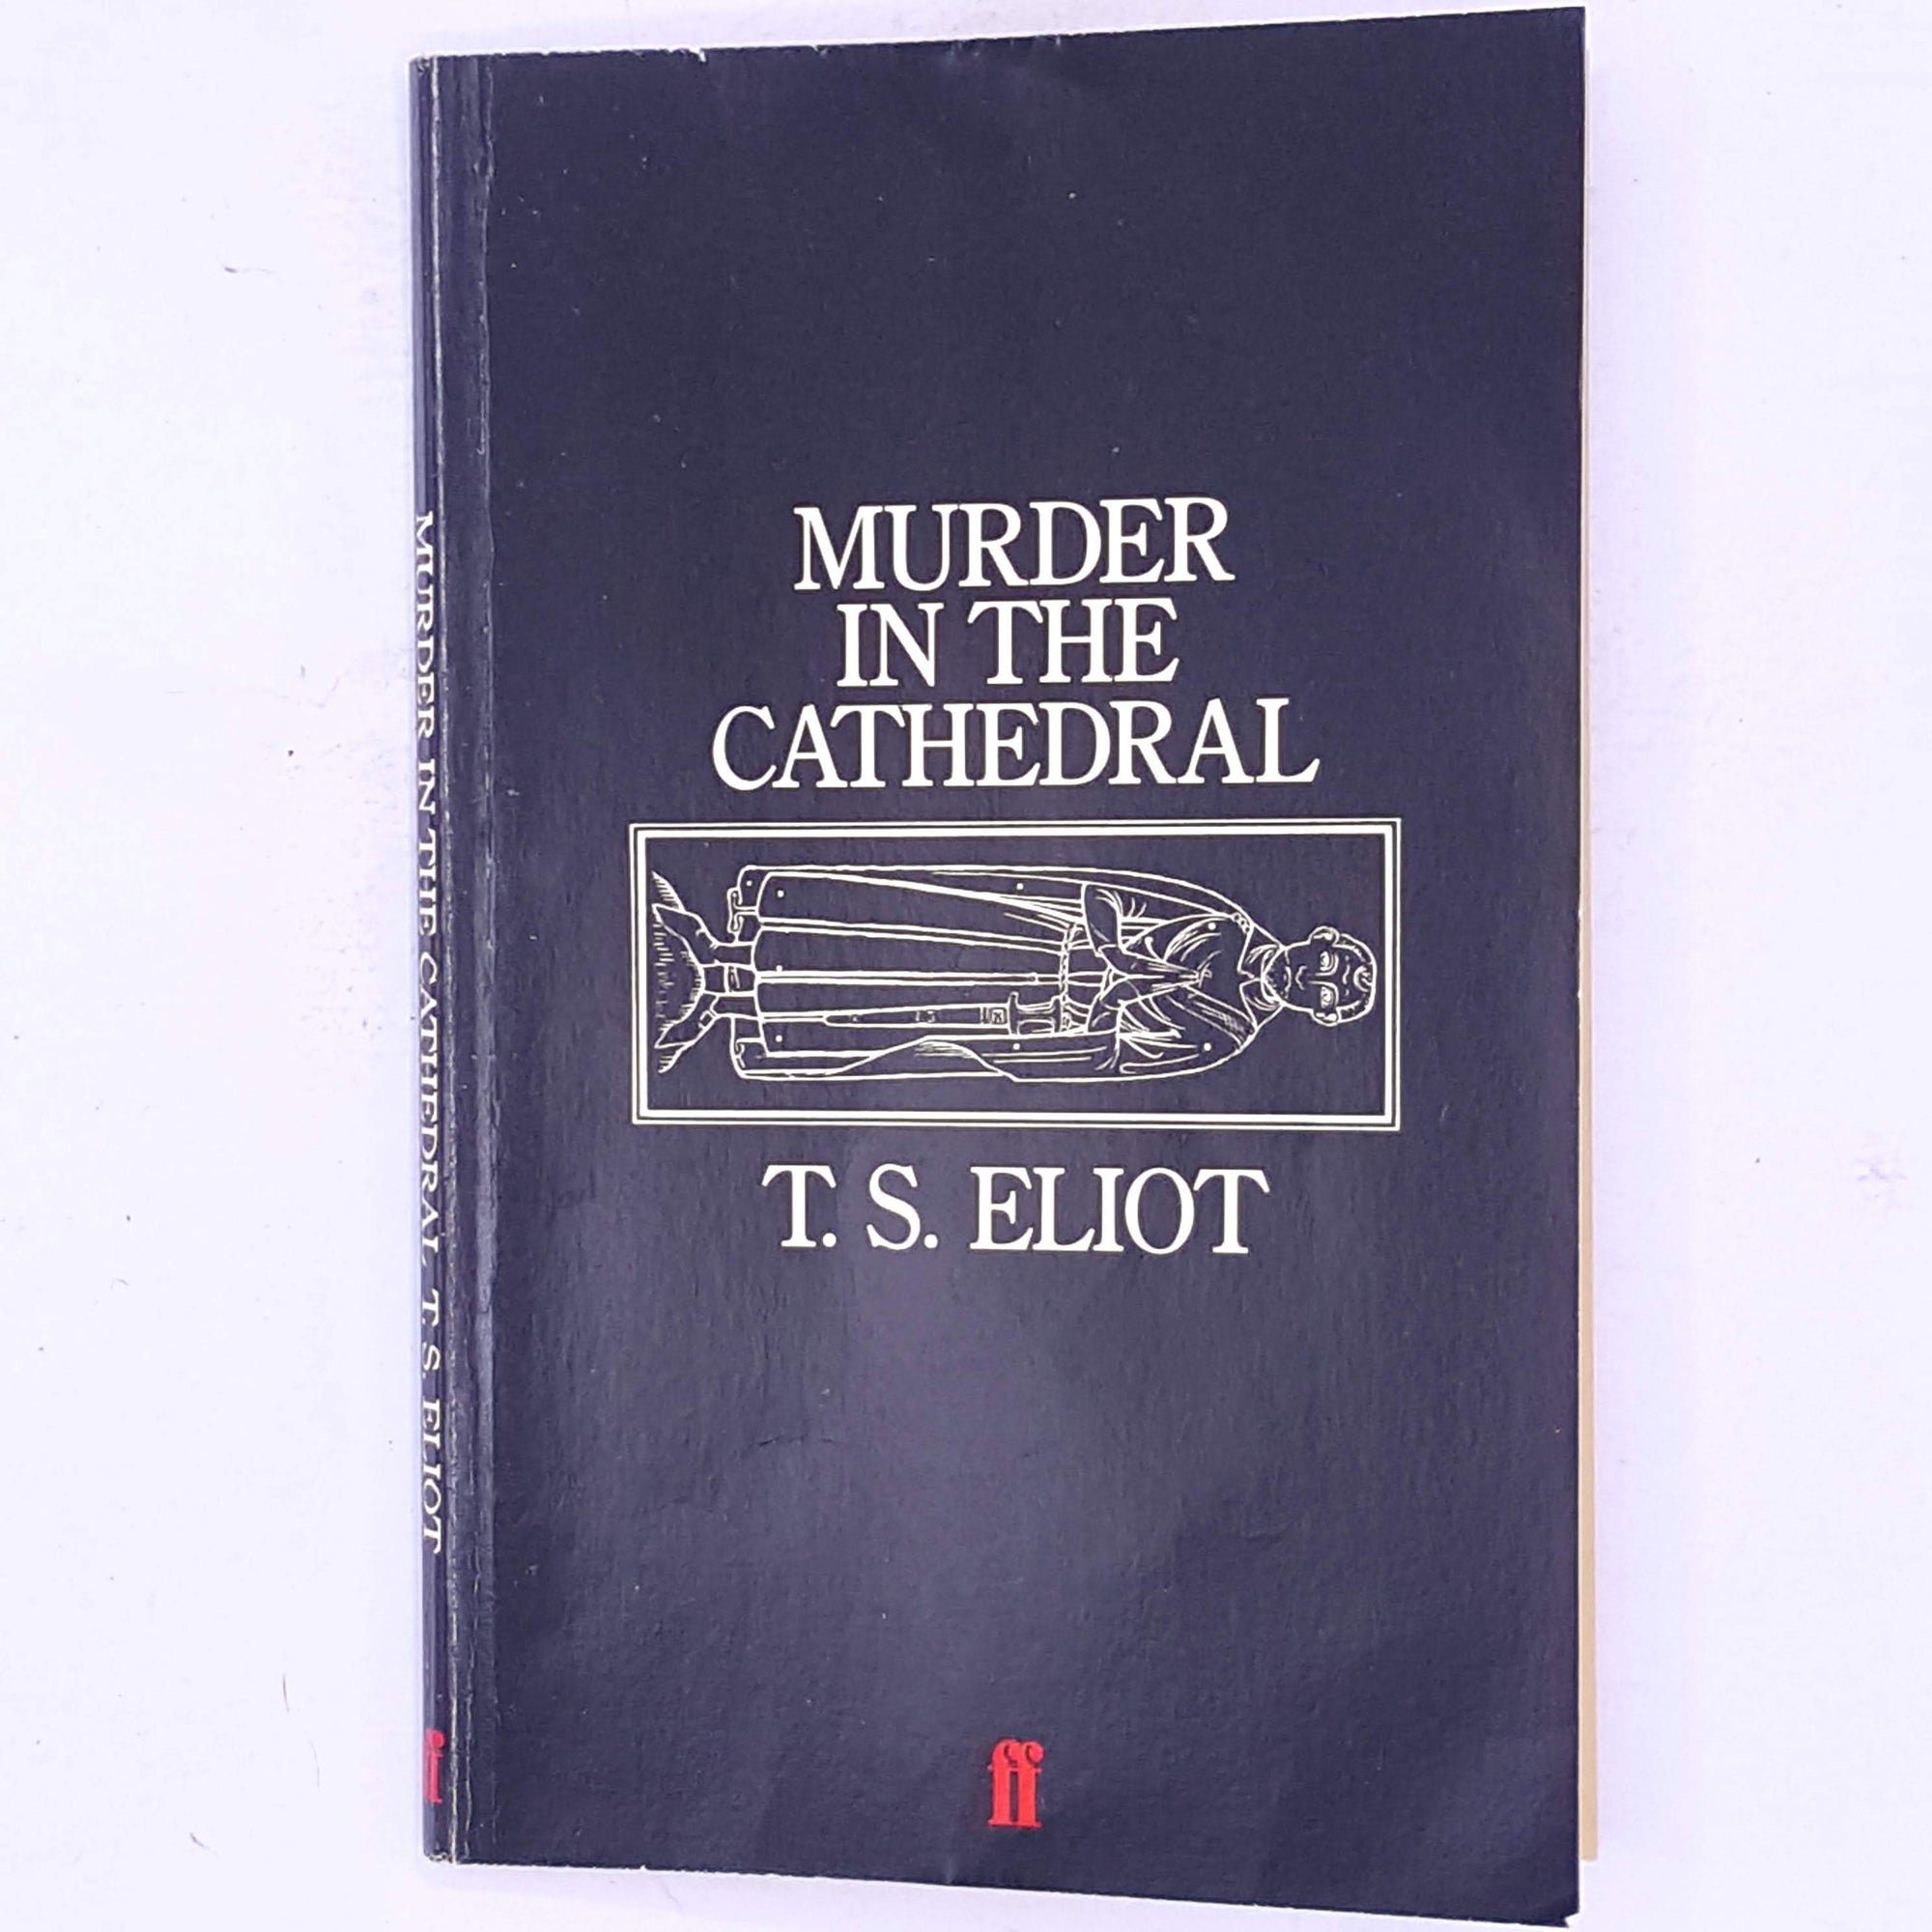 T.S. Eliot -  Murder in the Cathedral